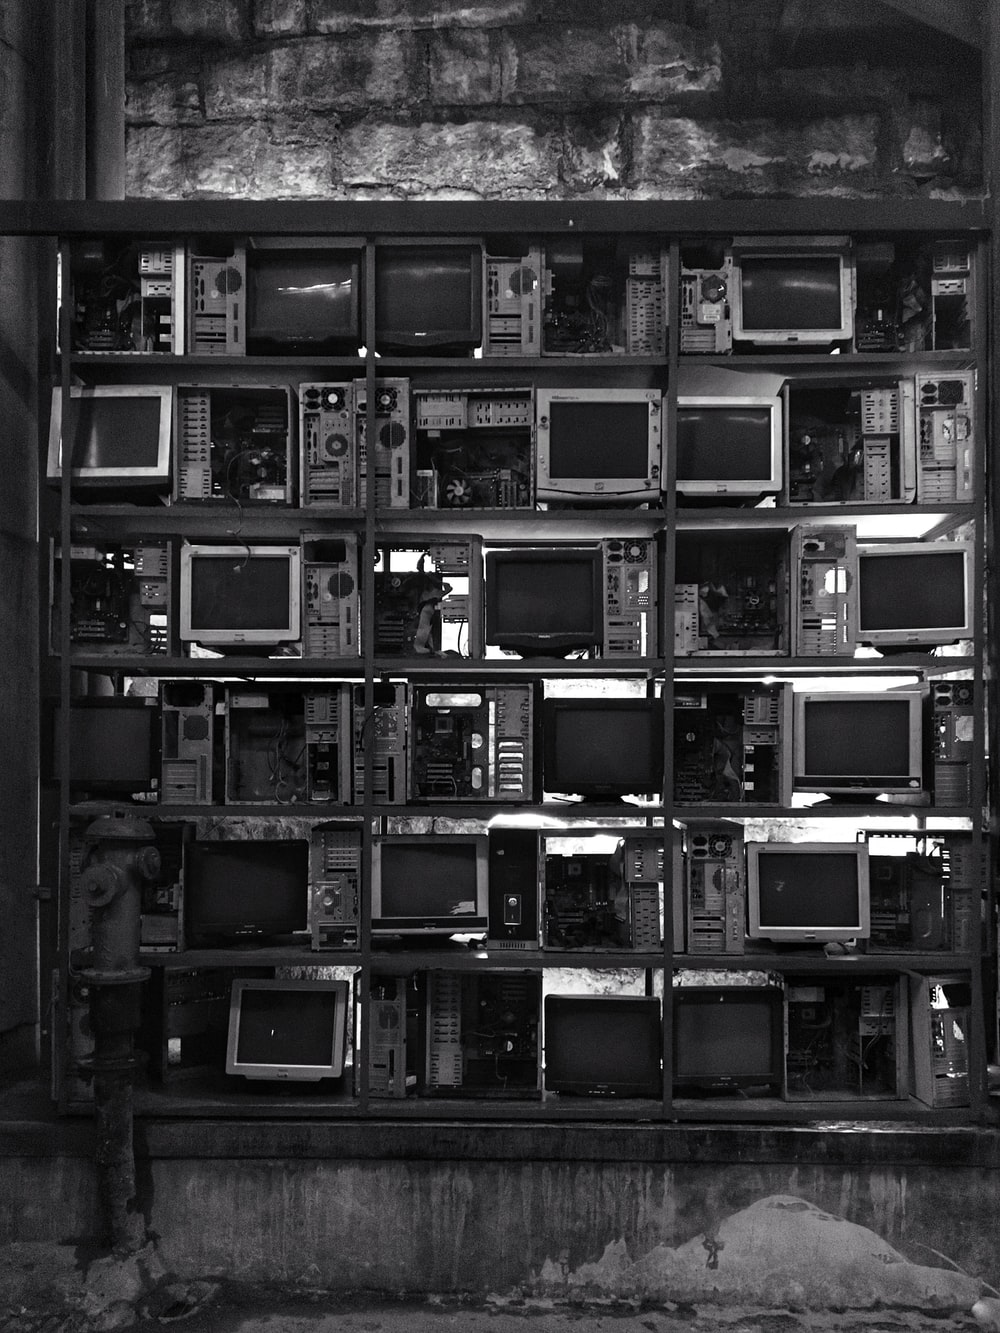 grayscale photography of CRT computer monitor lot